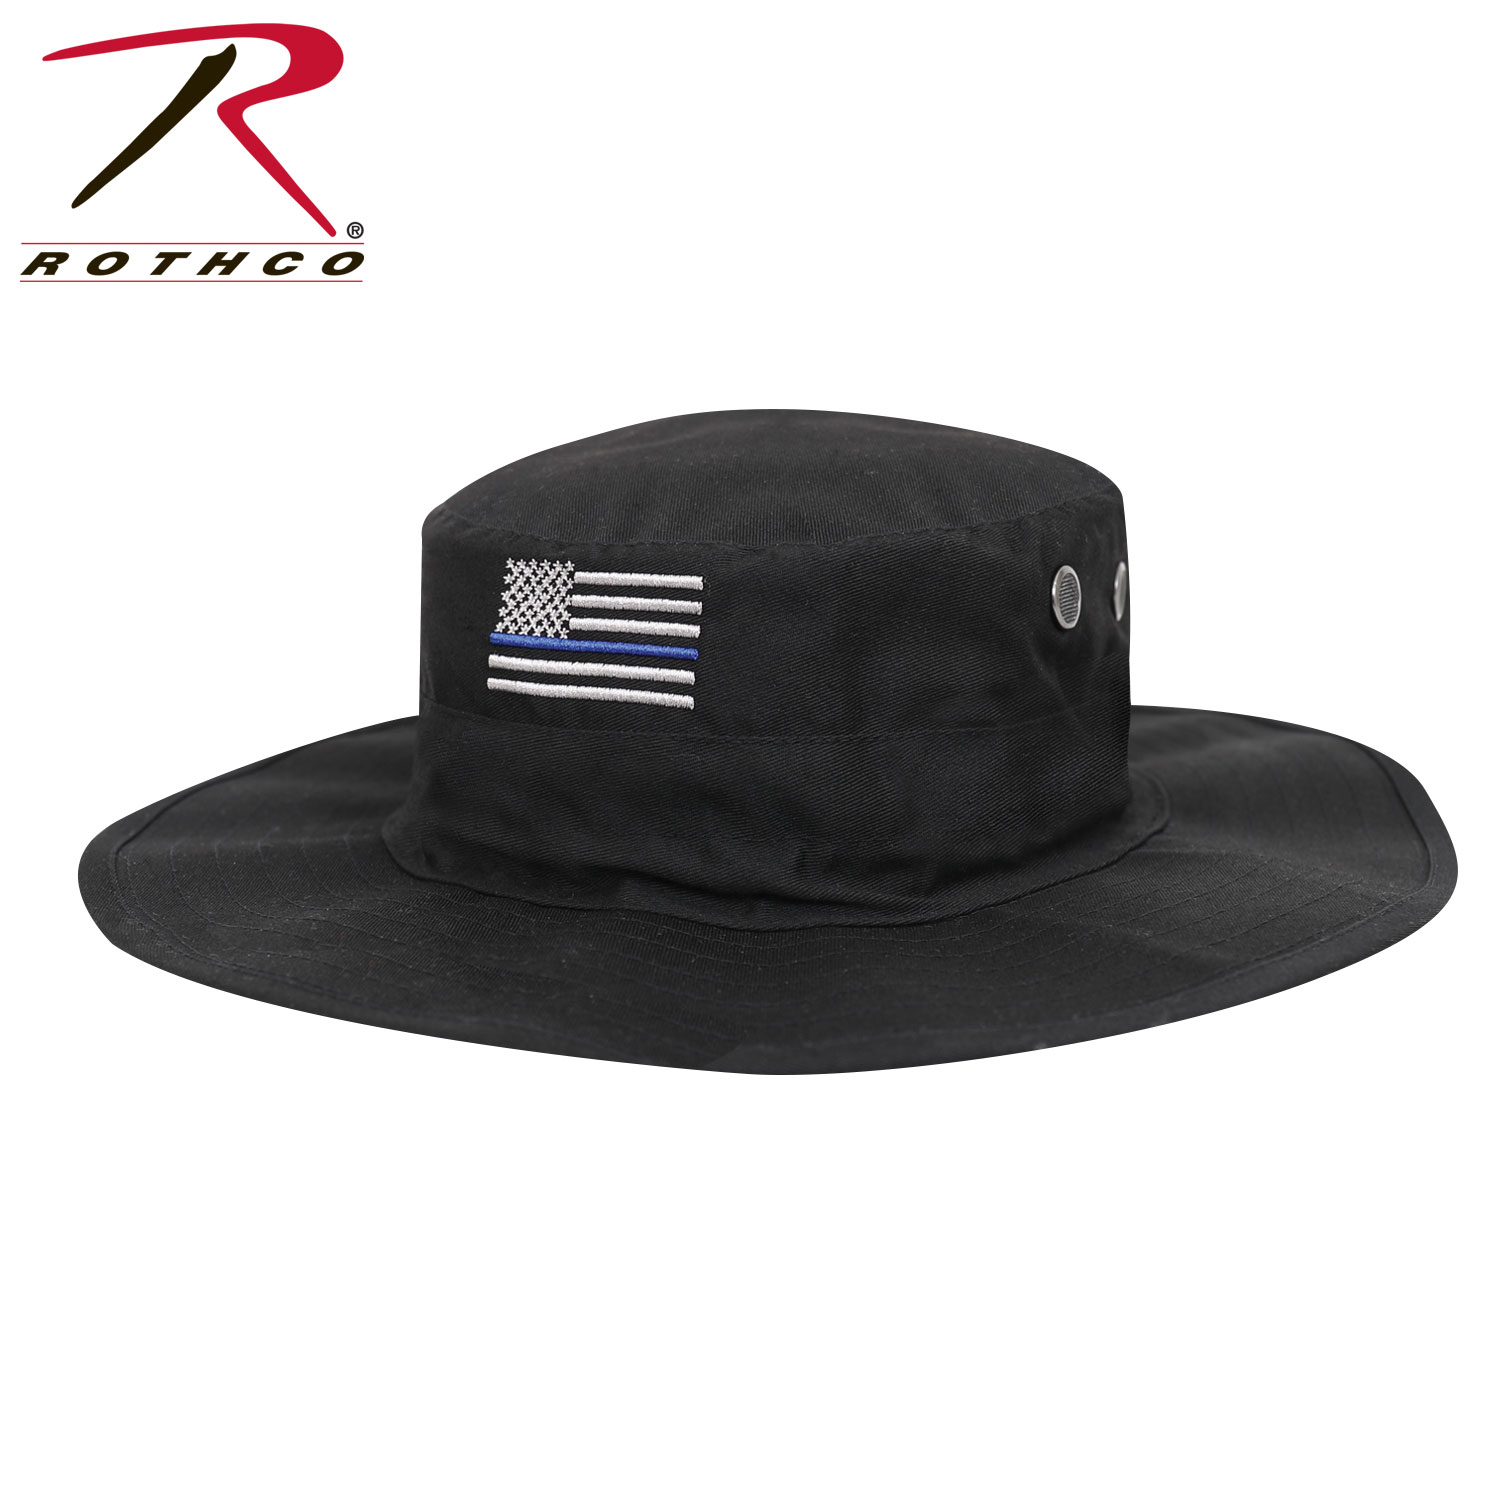 Rothco Thin Blue Line Adjustable Boonie Hat 32def0f390c8